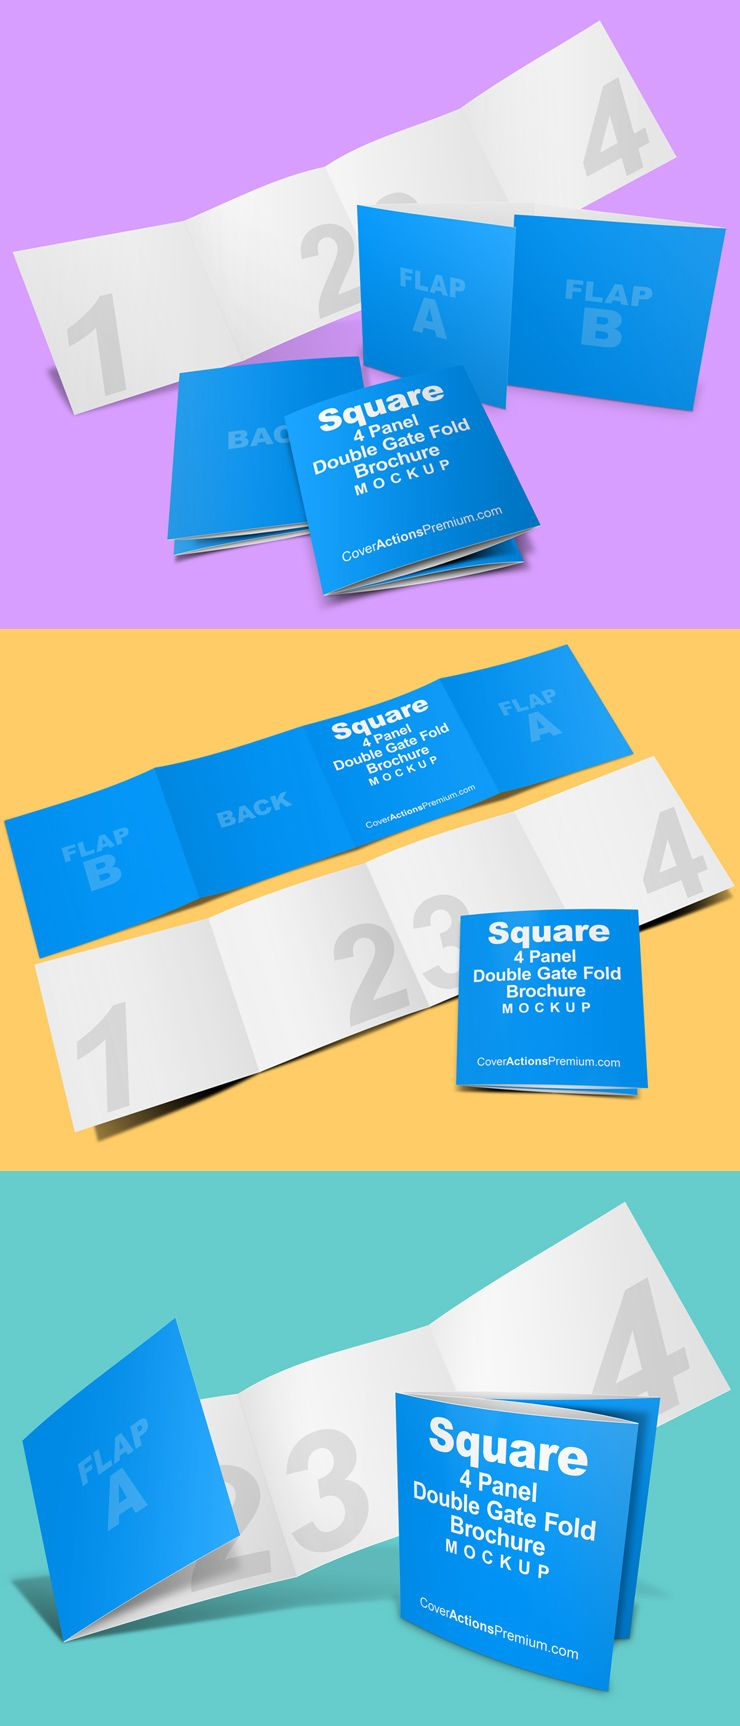 Square 4 Fold Brochure Mockup Double Gate Fold Cover Actions Premium Mockup Psd Template Brochure Flyer Mockup Page Layout Design